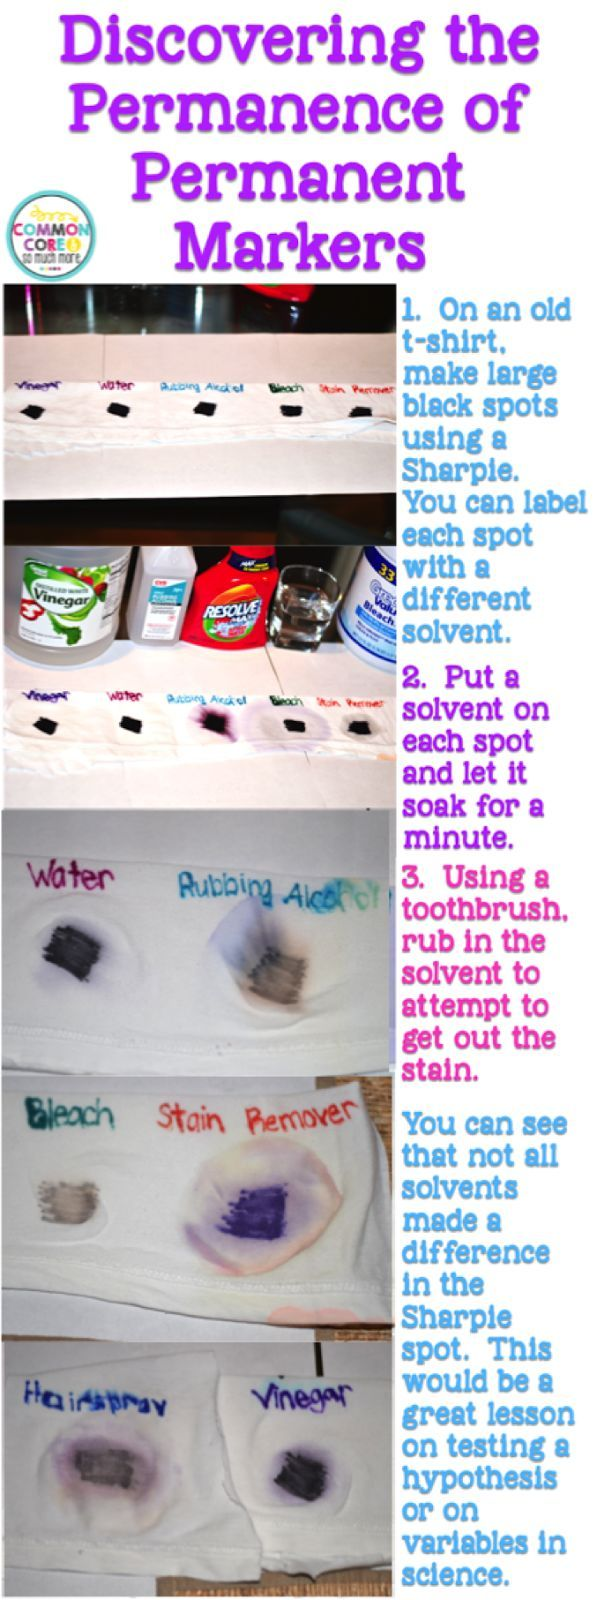 how permanent are permanent markers science project